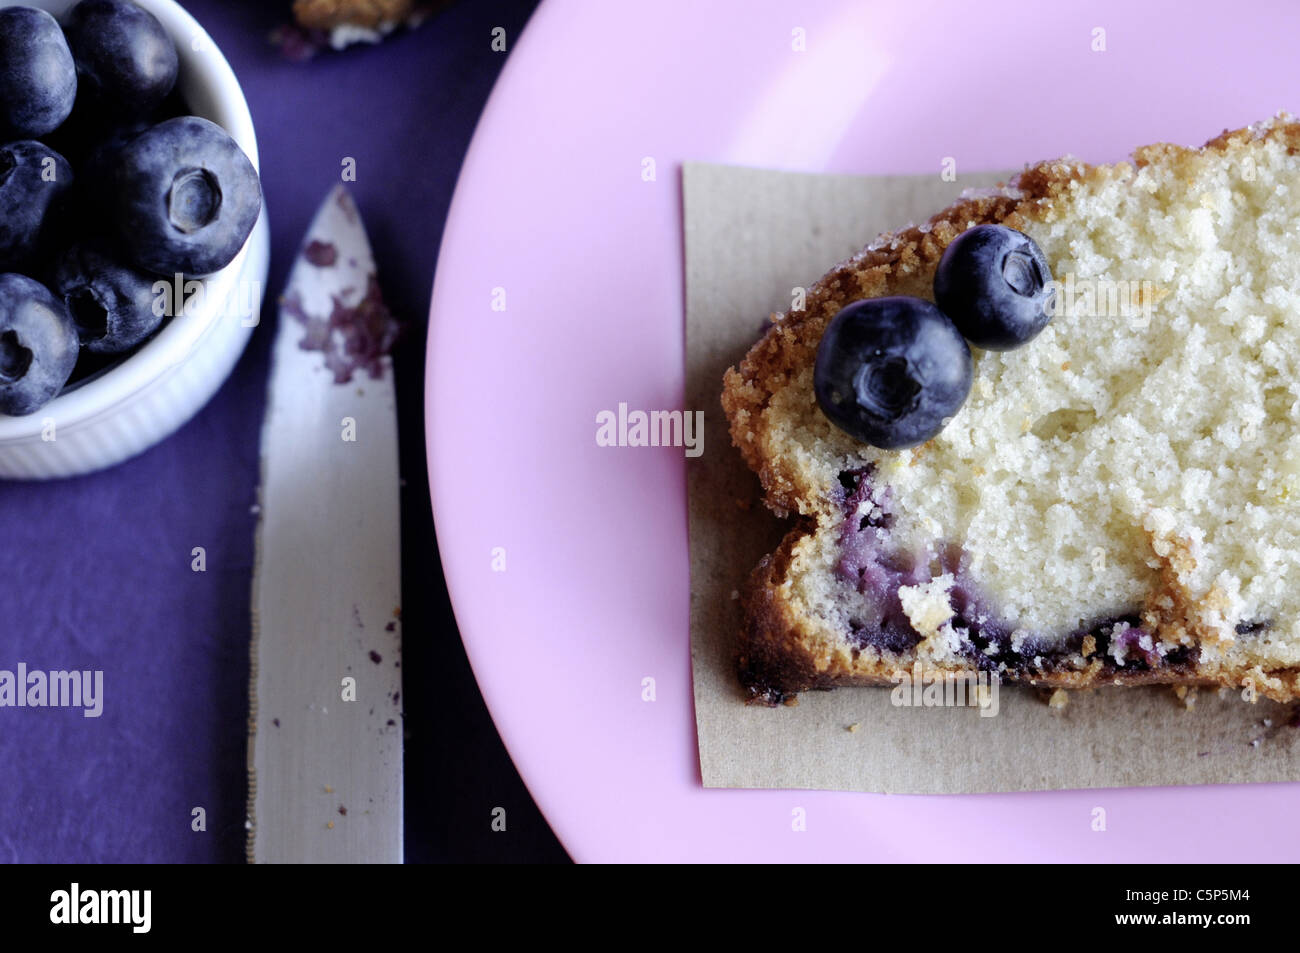 Lemon blueberry cake on a pink plate - Stock Image